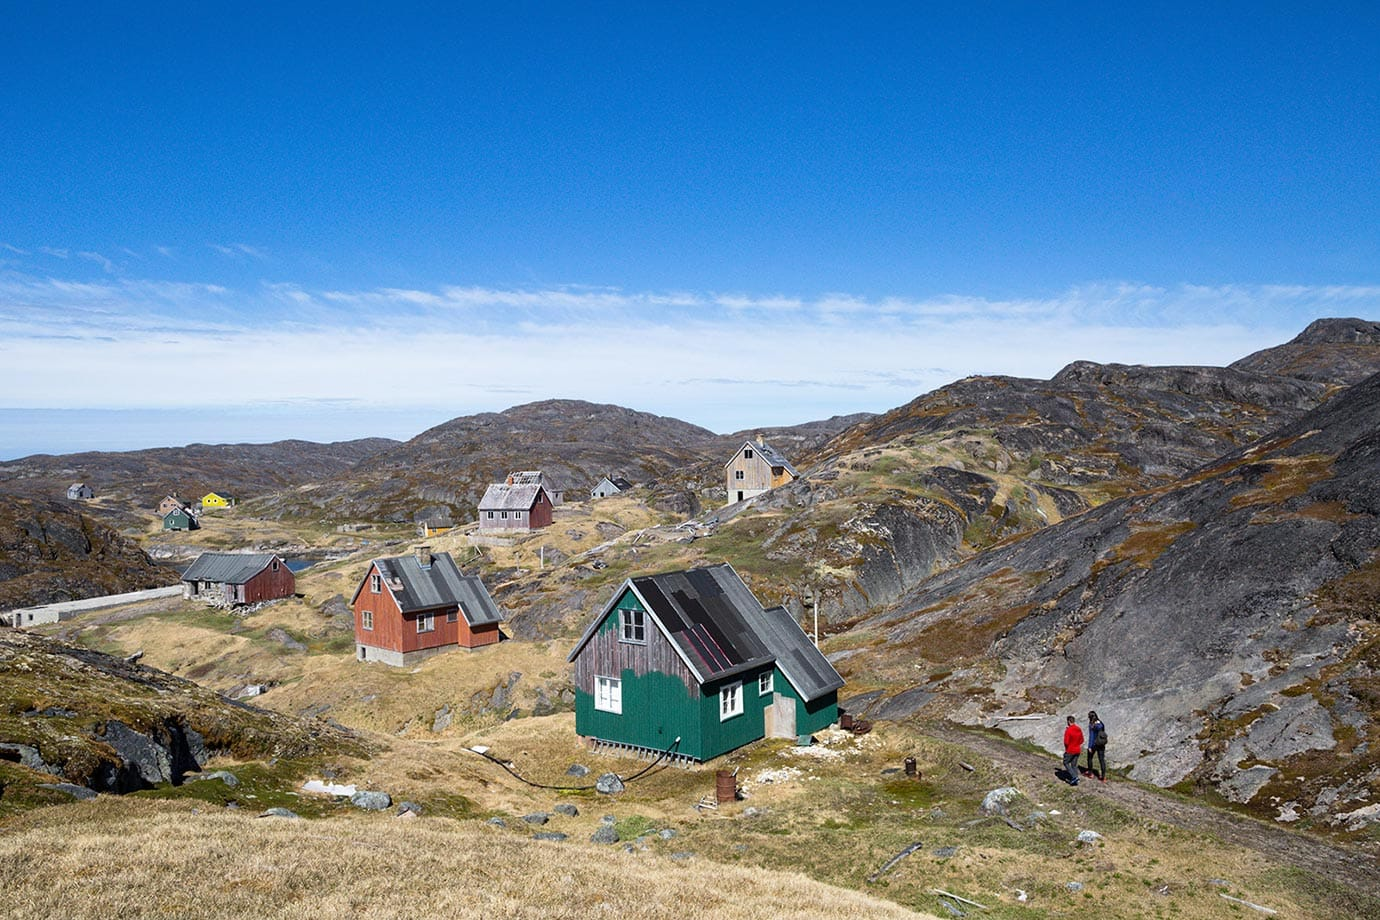 Kangeq outside of Nuuk Greenland, abandoned village